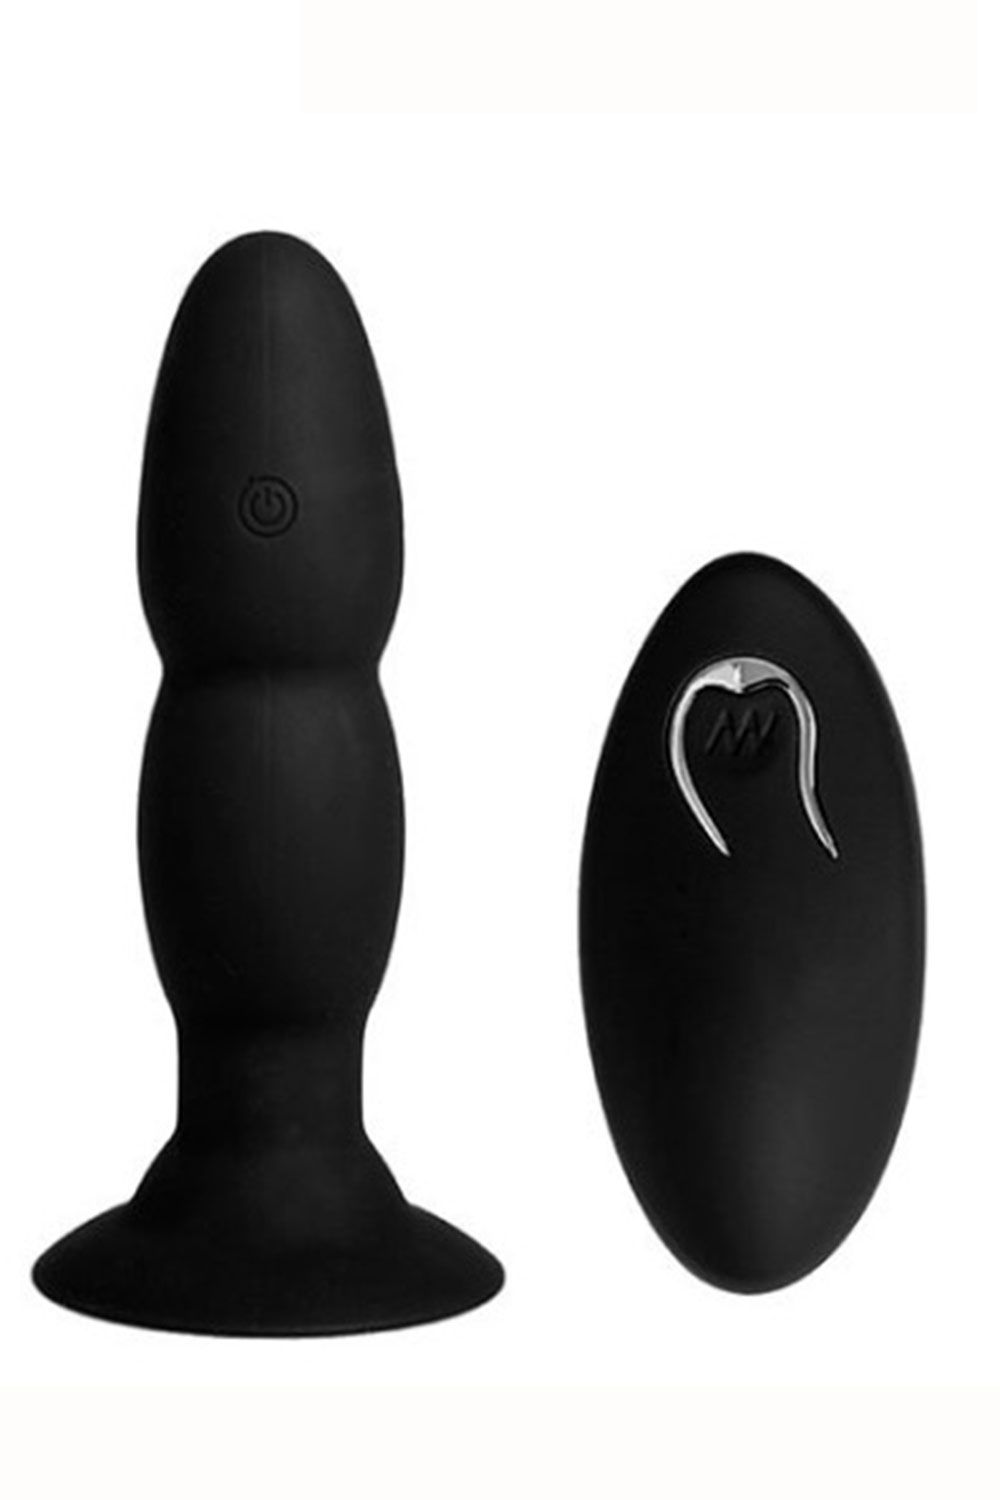 Best anal sex toys for beginners